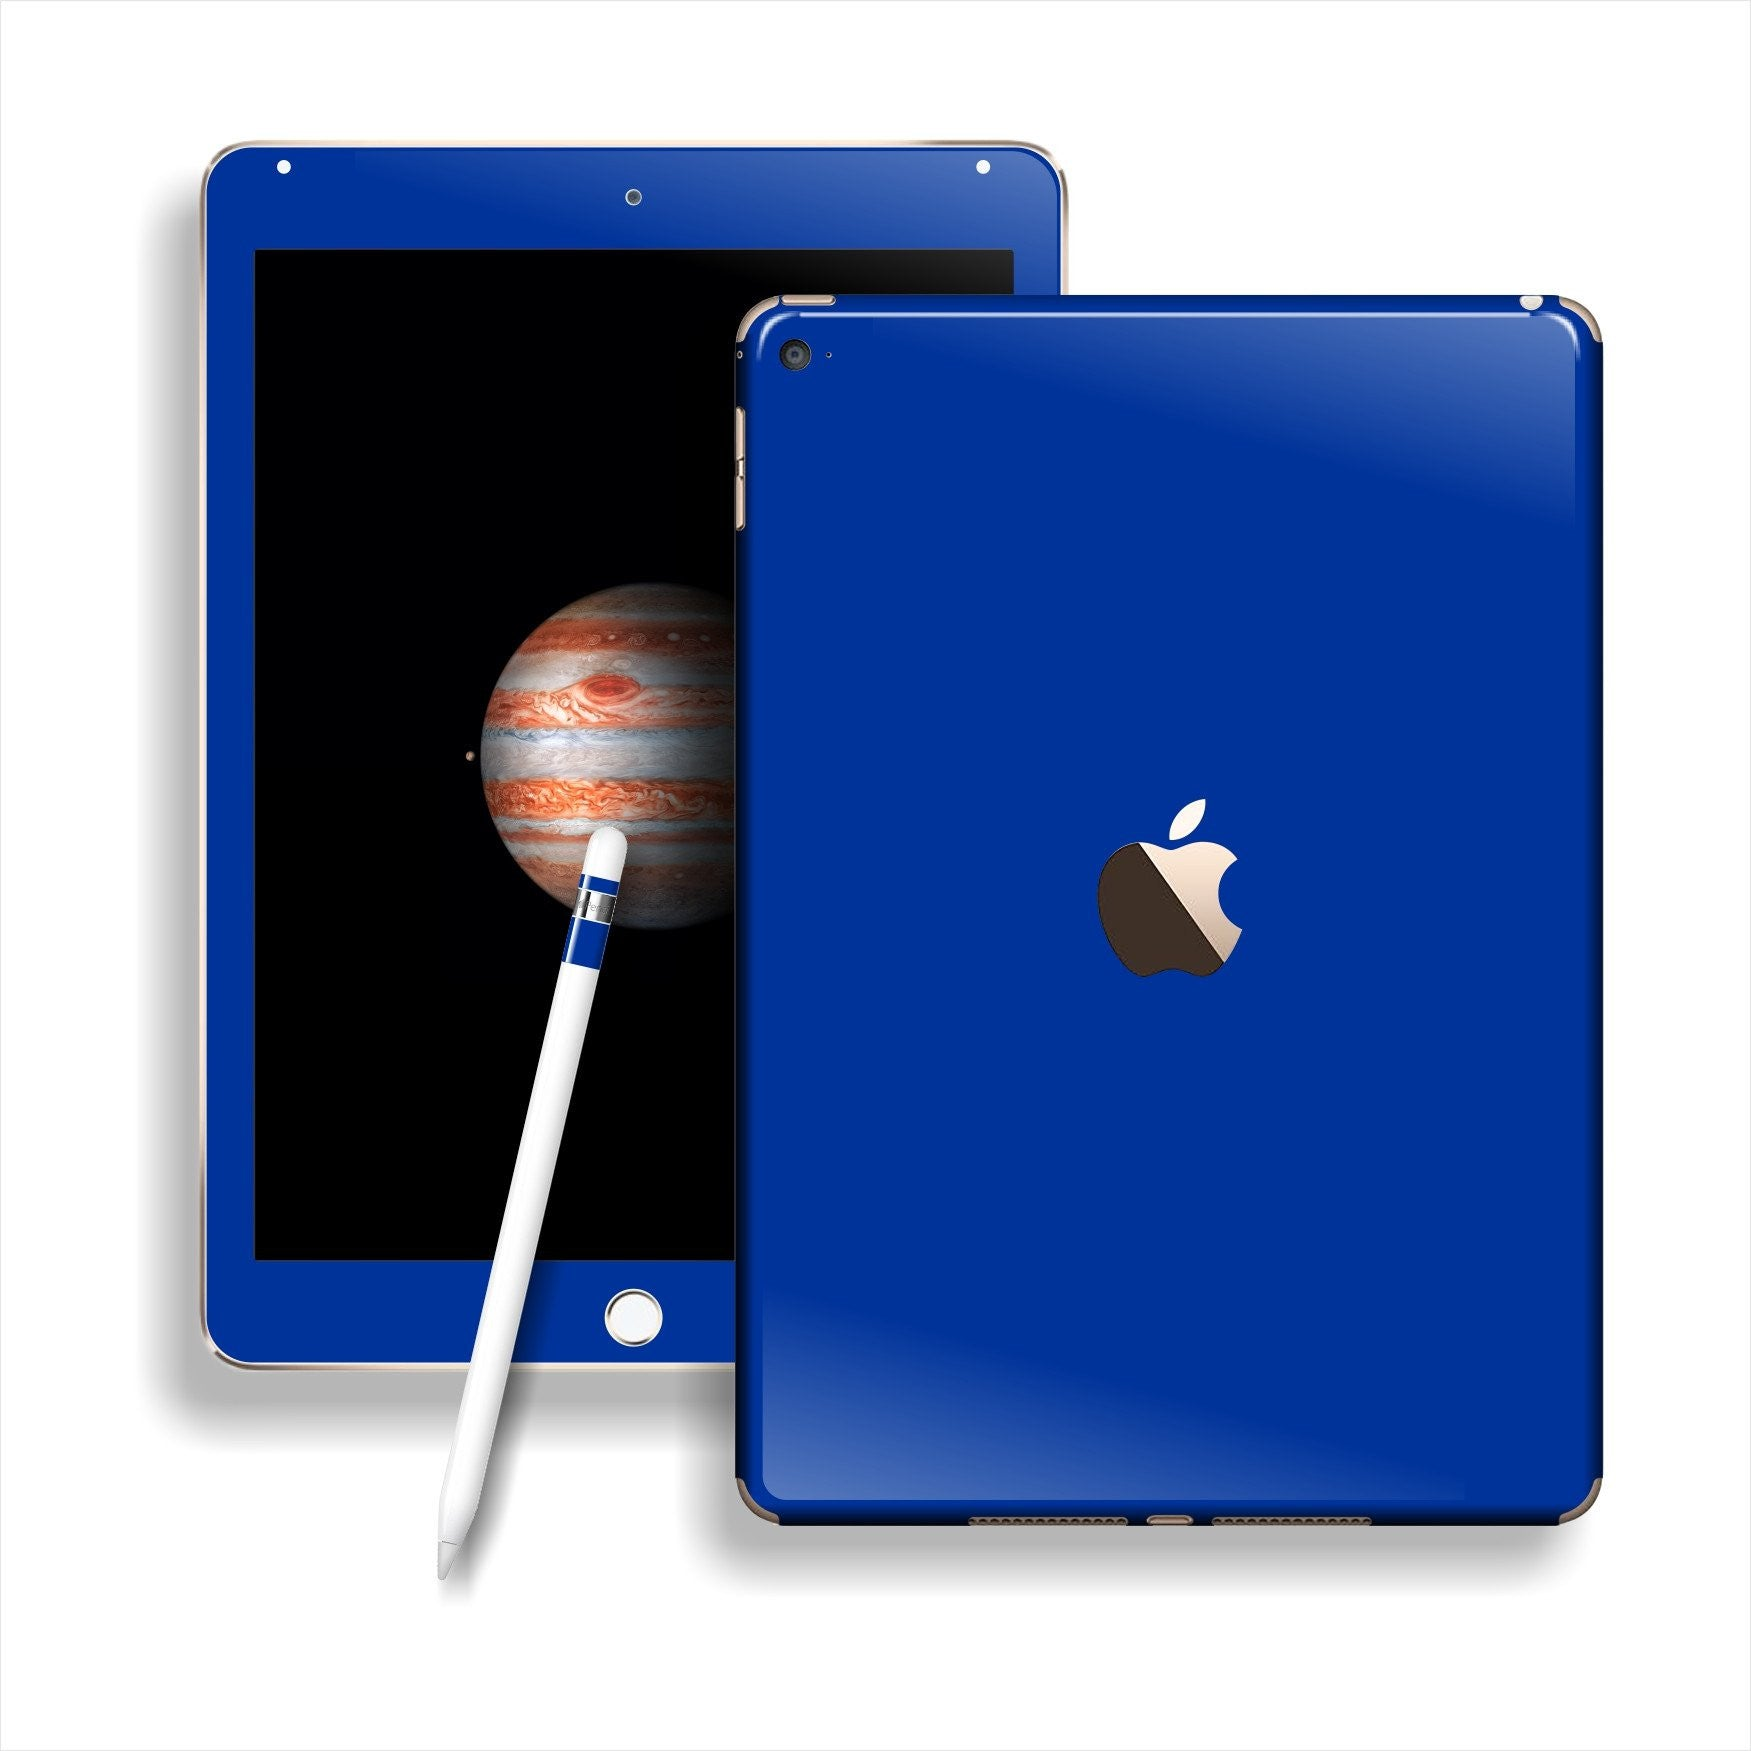 iPad PRO Glossy Royal Blue Skin Wrap Sticker Decal Cover Protector by EasySkinz